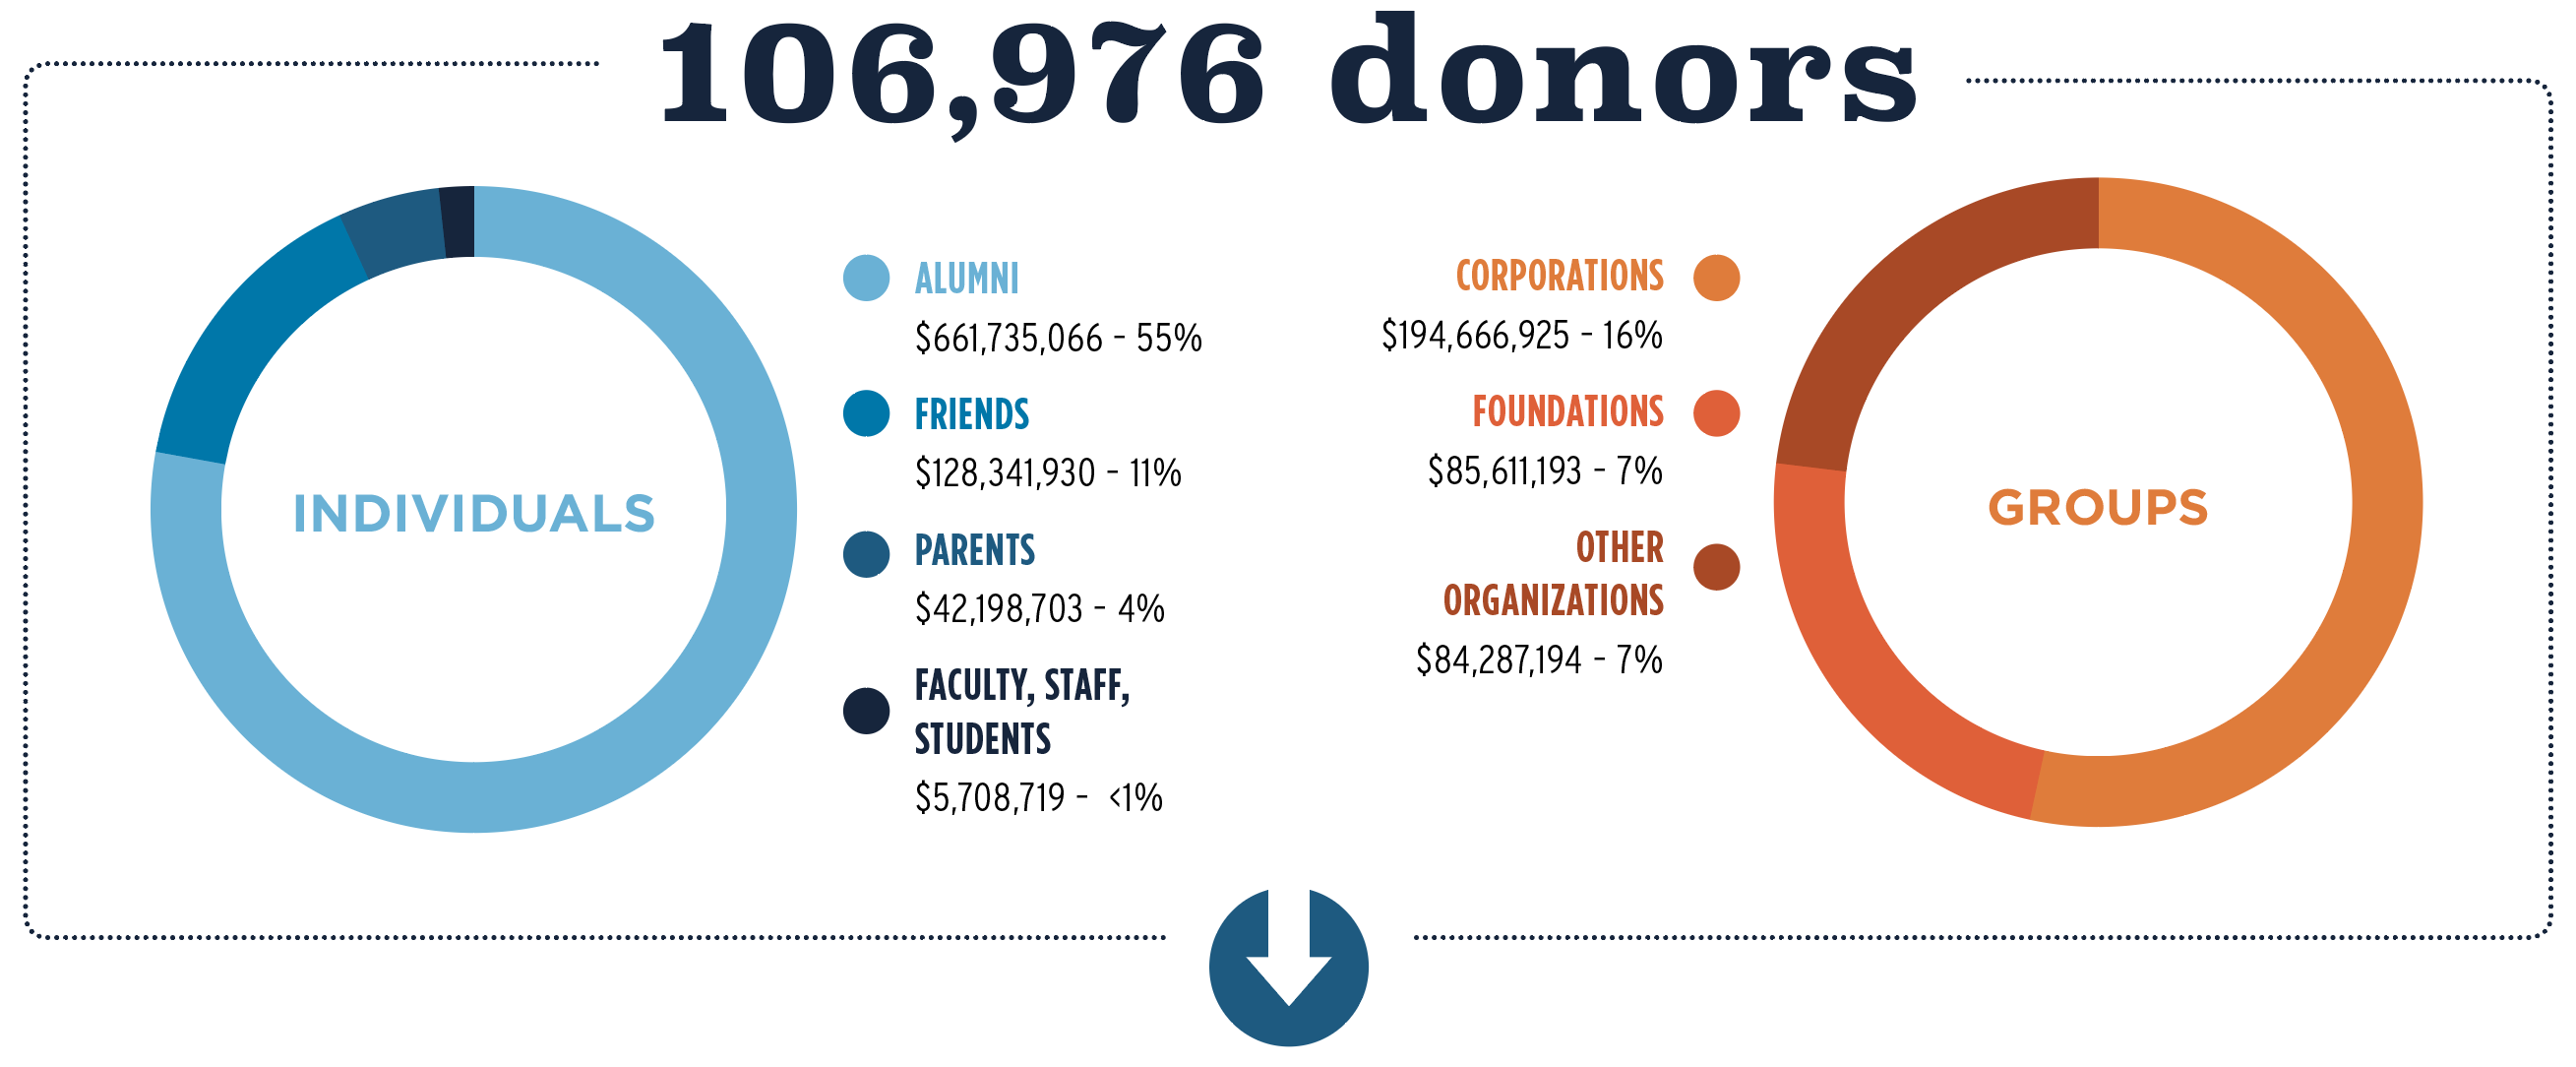 106,976 donors; Individuals, Alumni $661,735,066 – 55%, Friends $128,341,930 – 11%, Parents $42,198,703 – 4%, Faculty, Staff, Students $5,708,719-1%; Corporations $194,666,925-16%, Foundations $85,611,193-7%, Other Organizations $84,287,194-7%